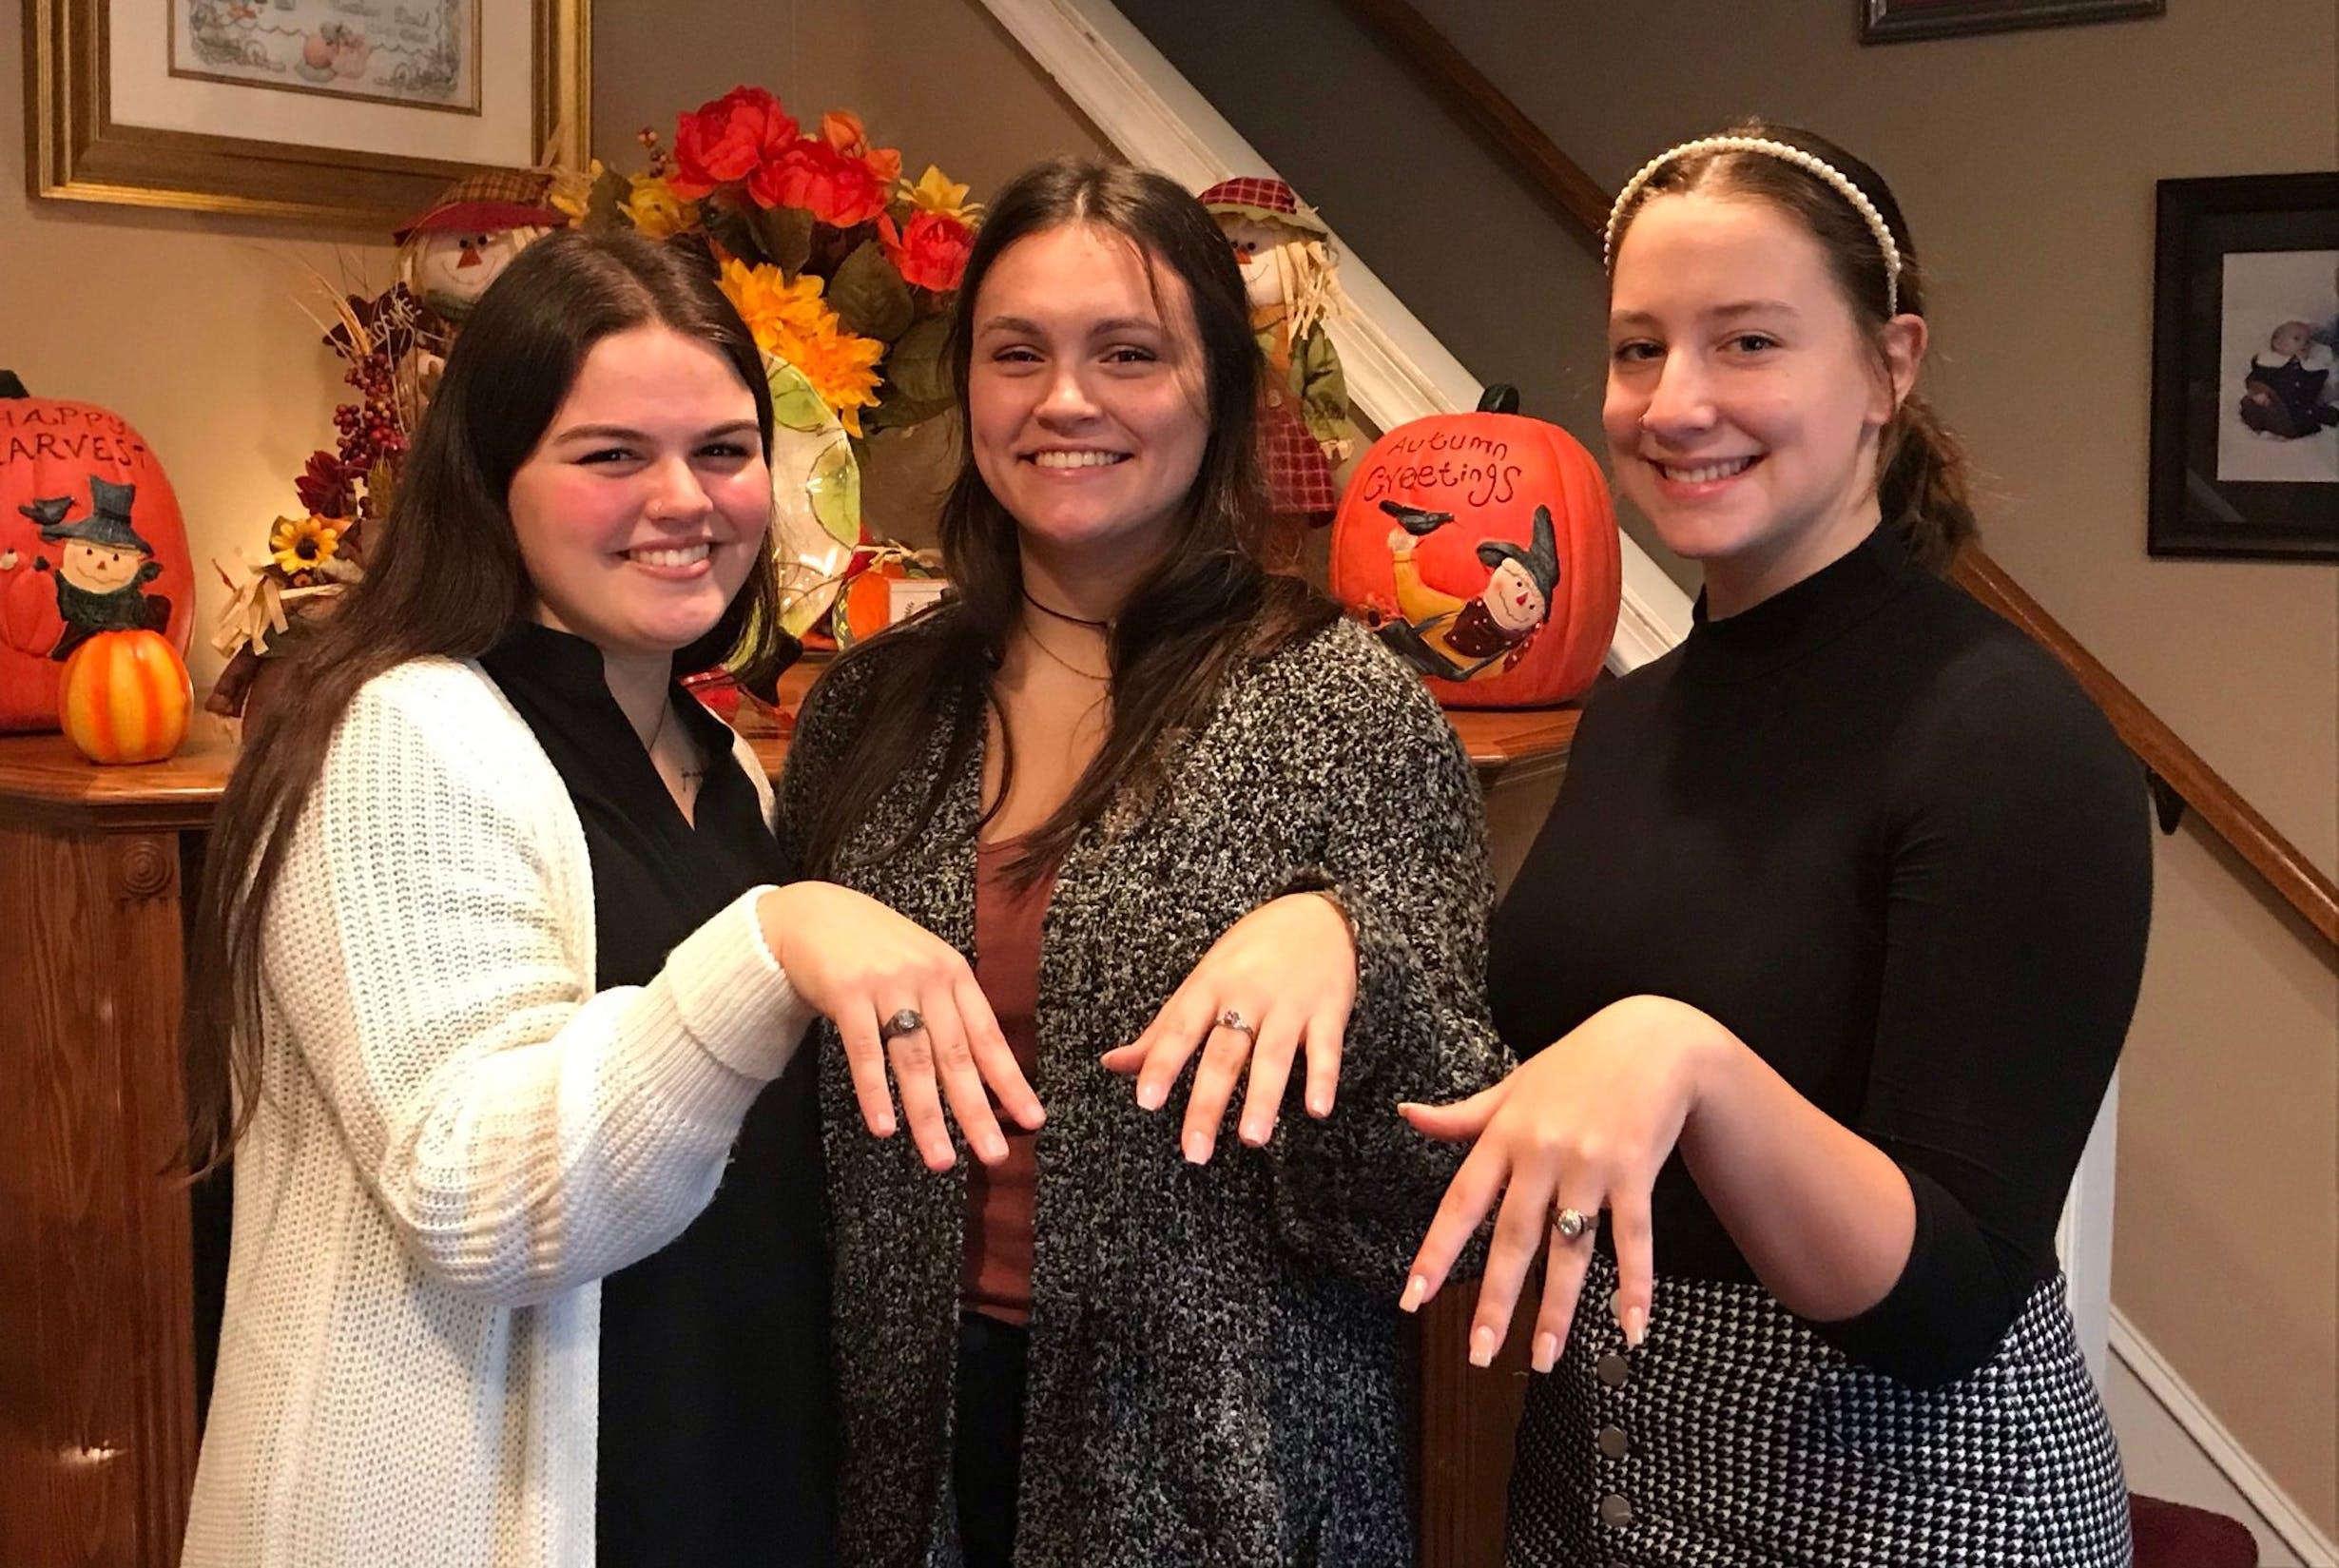 Three female students pose with their new class rings